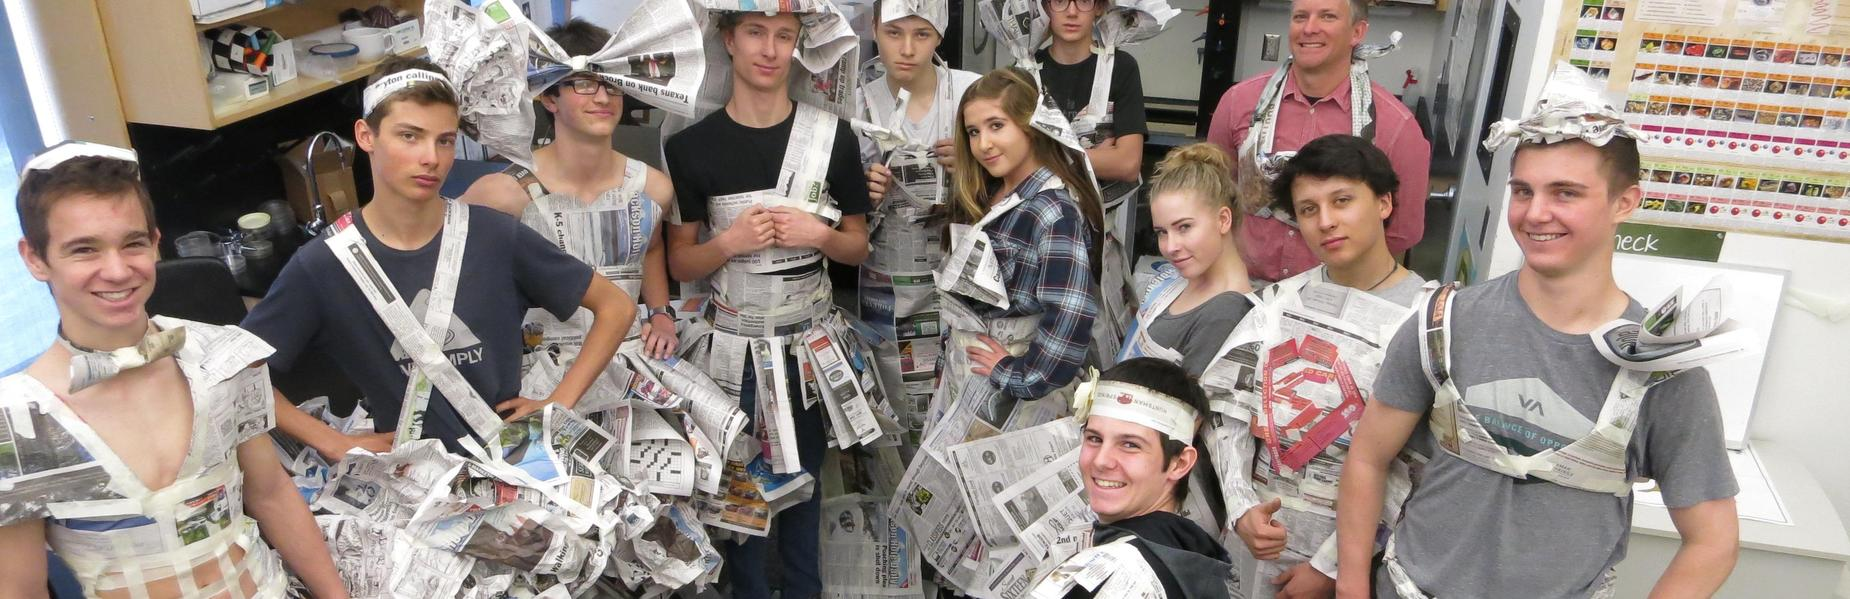 JHCS Newspaper Fashion Show